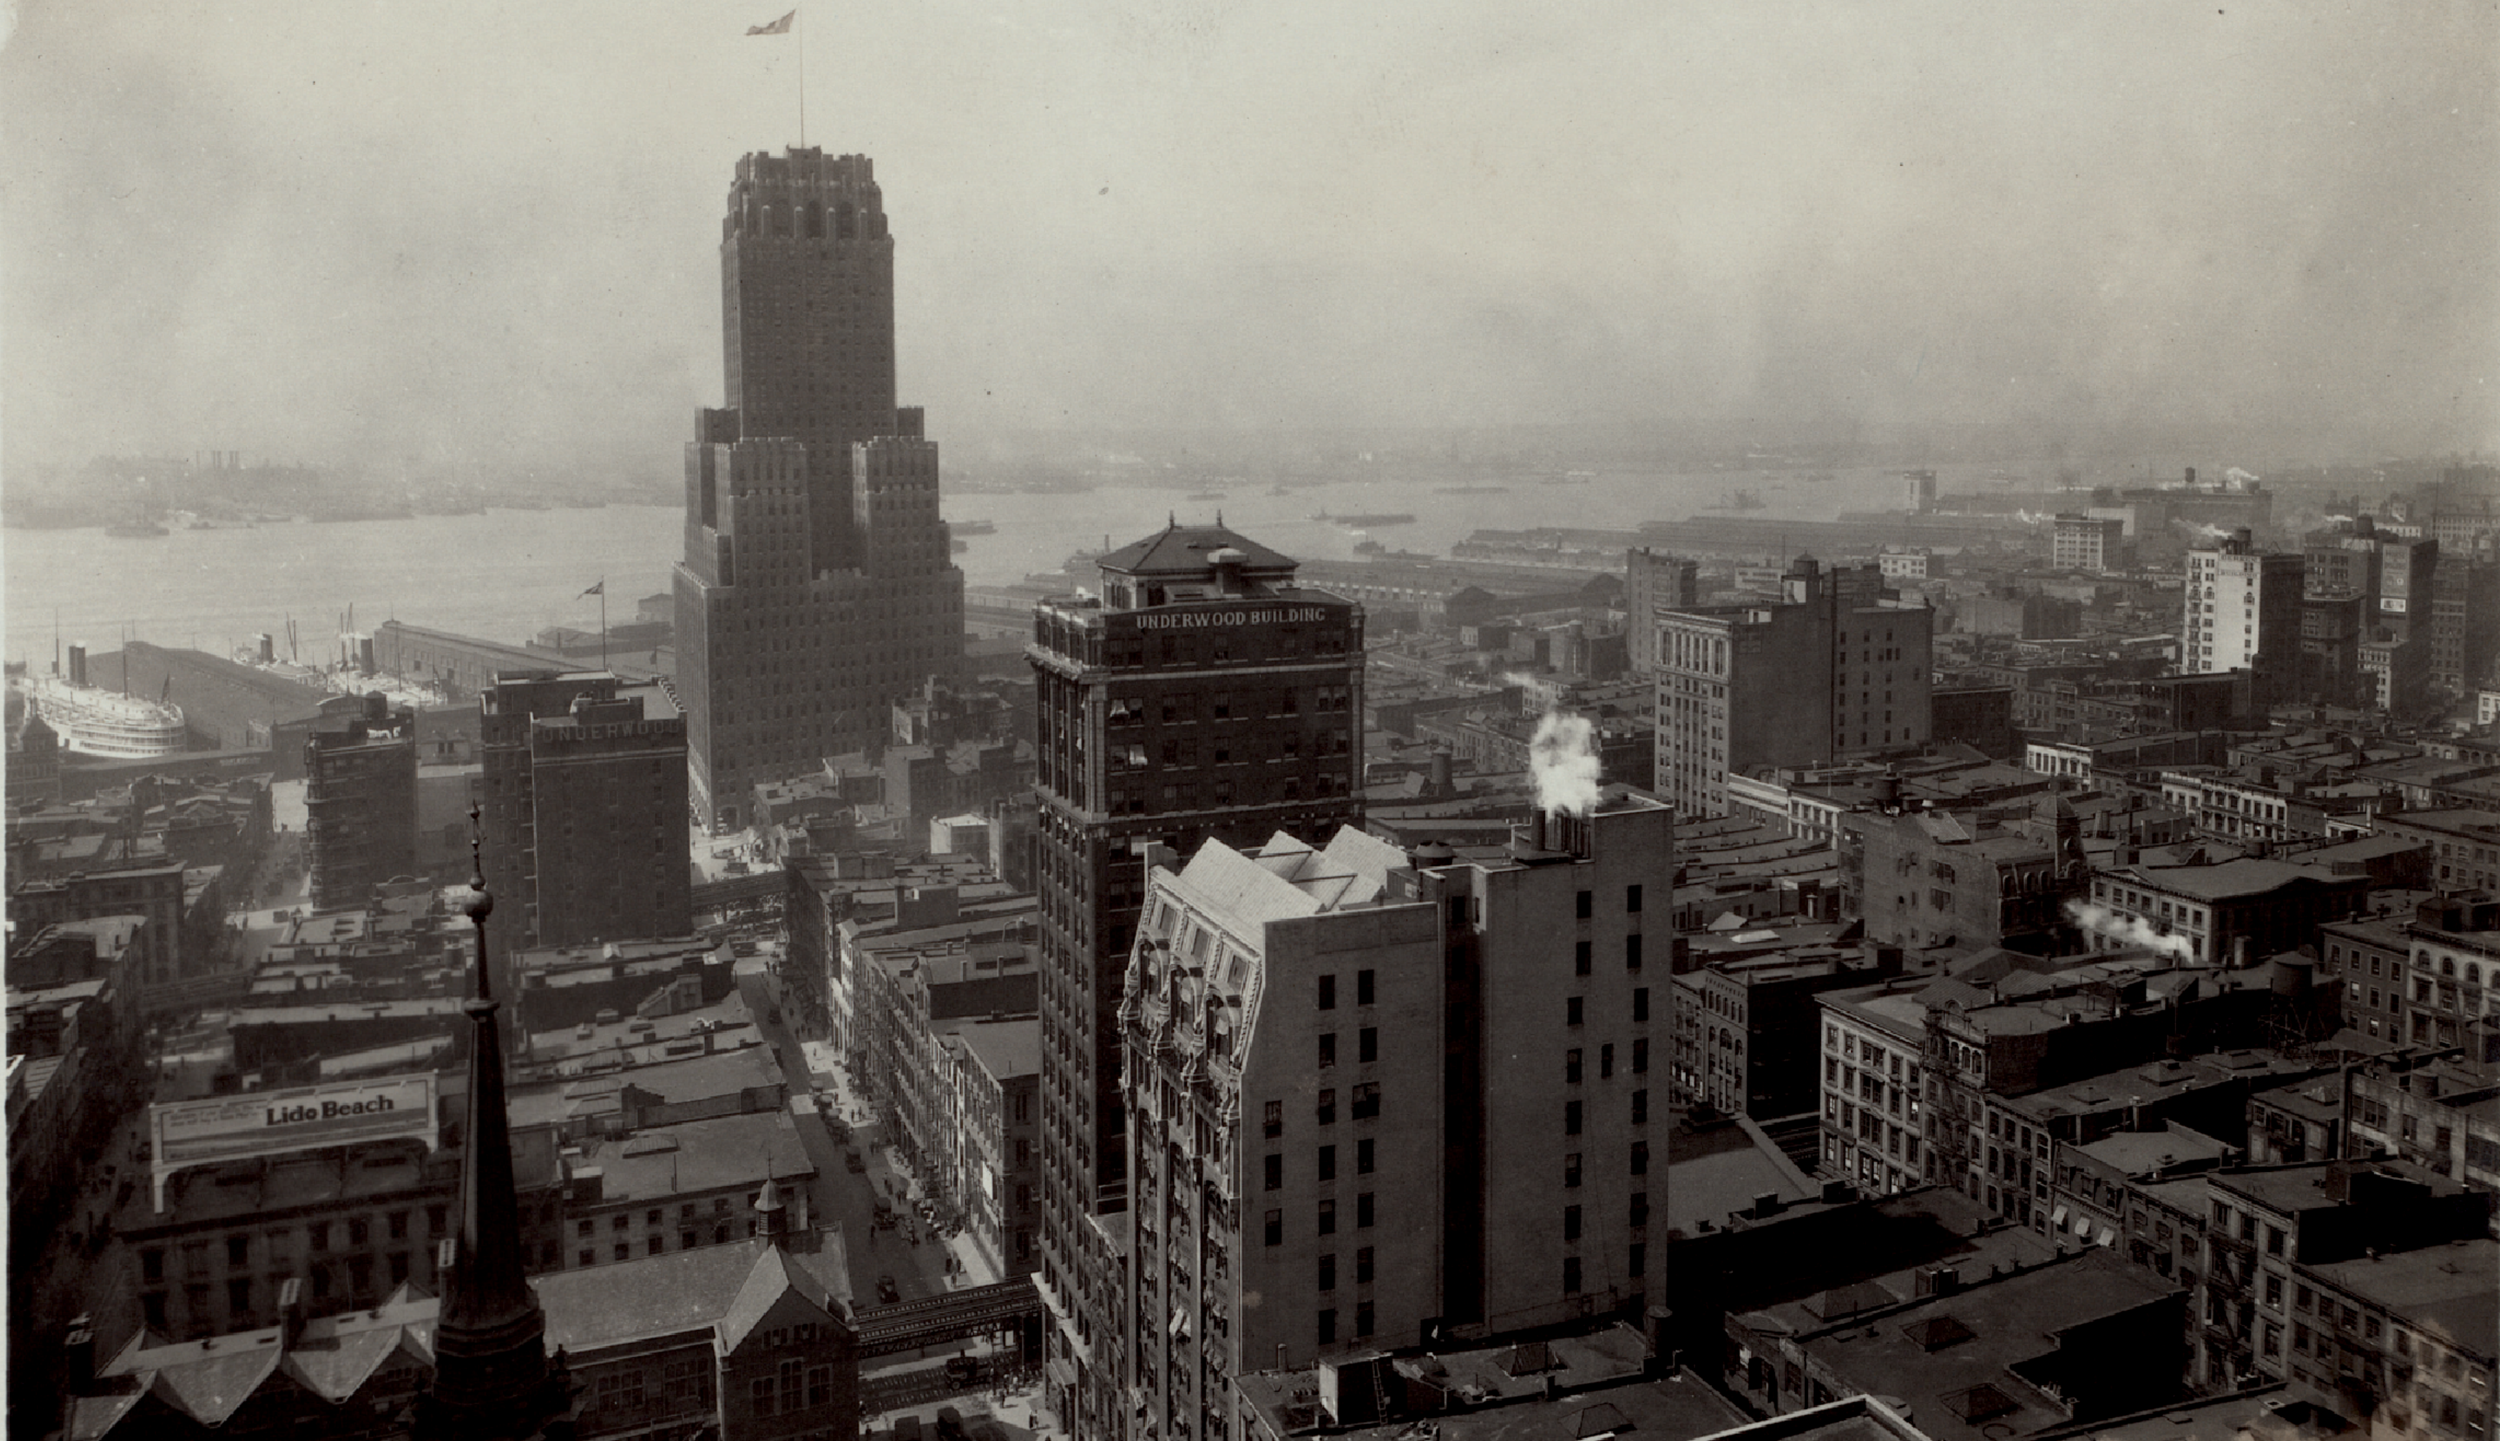 Barclay Vesey Building seen from the Singer Building, 1926.